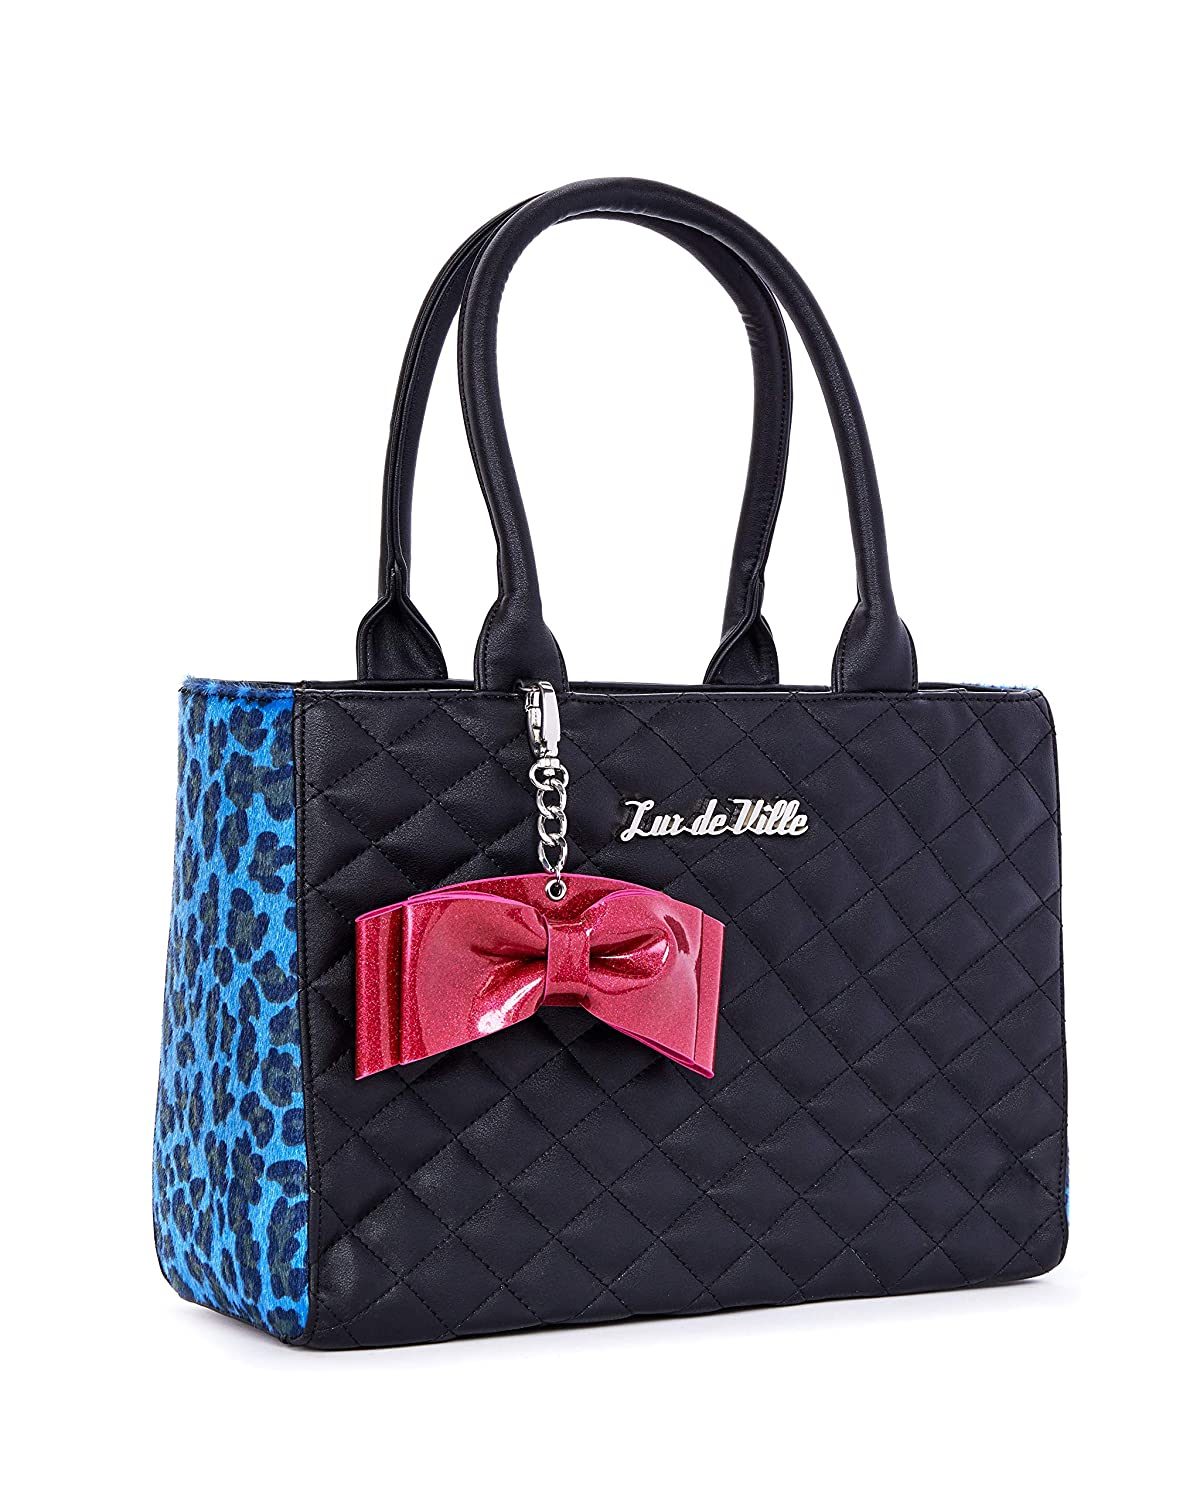 bluee Leopard Sweet Pea Tote bluee Leopard and Black Matte  Limited Edition